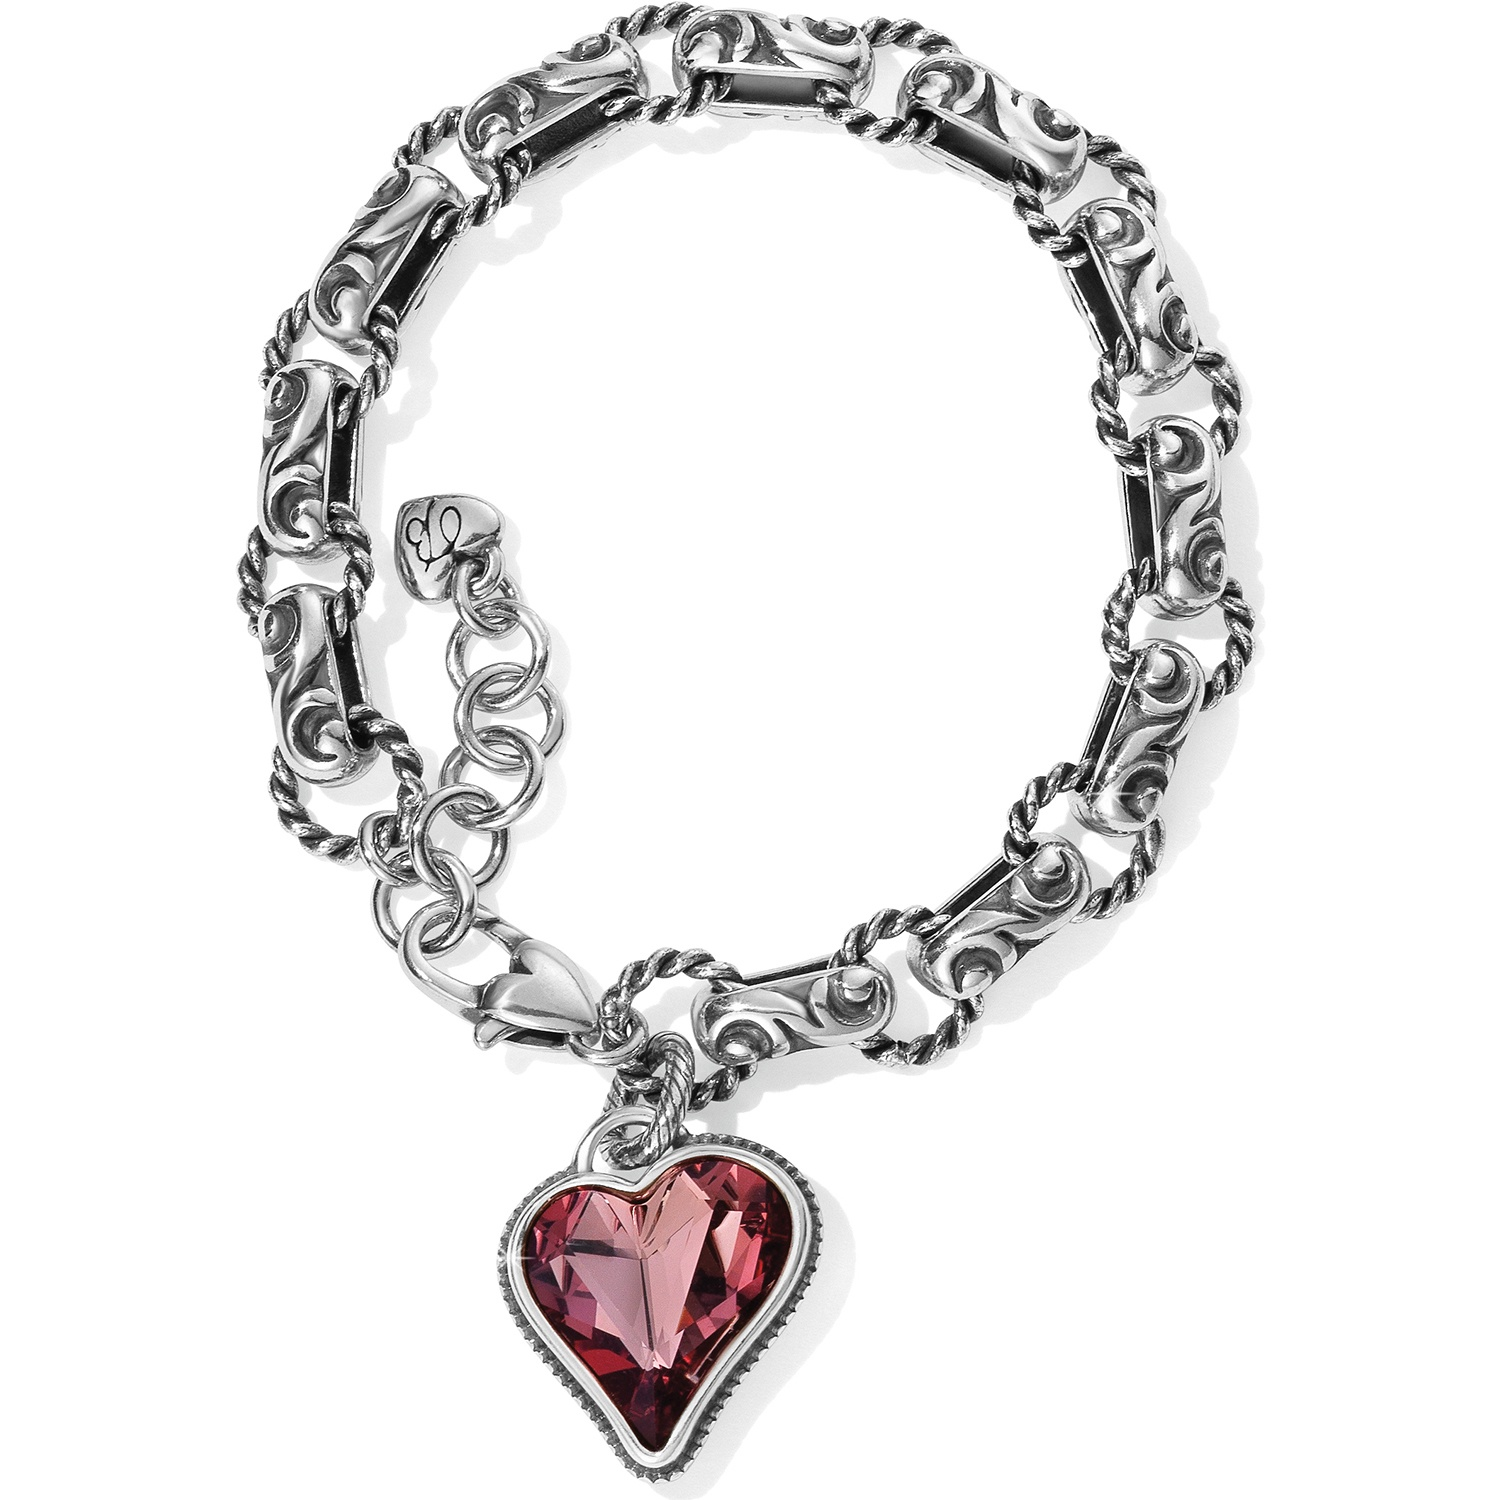 Heart Jewelry | Brighton Collectibles